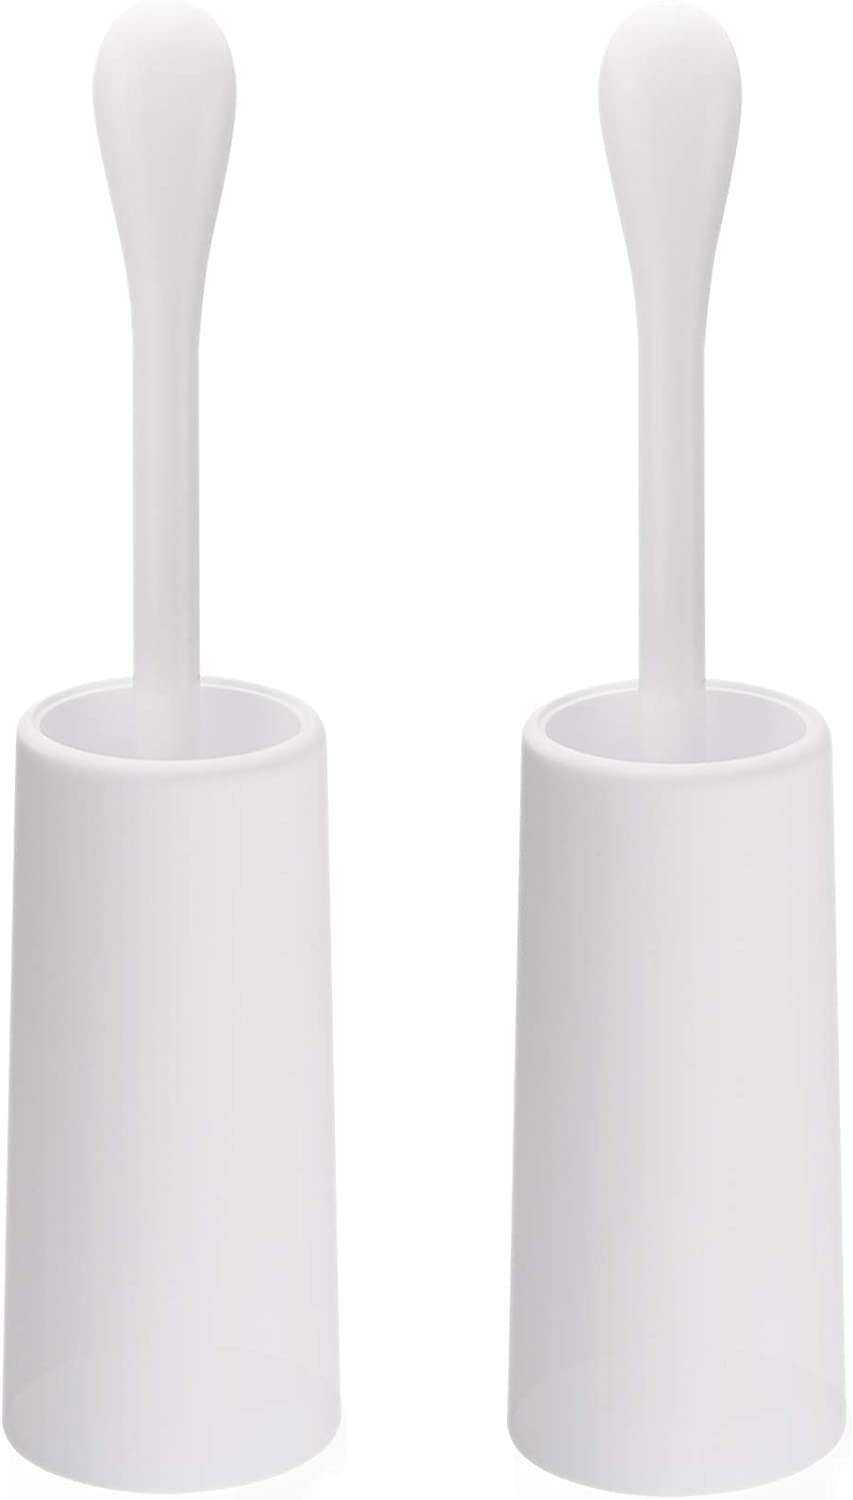 AmazerBath Toilet Brush and Holder, 2-Pack Good Grip Toilet Brush Compact Toilet Bowl Brush Set with Strong Bristles, Long Handle, Deep Cleaning (White)